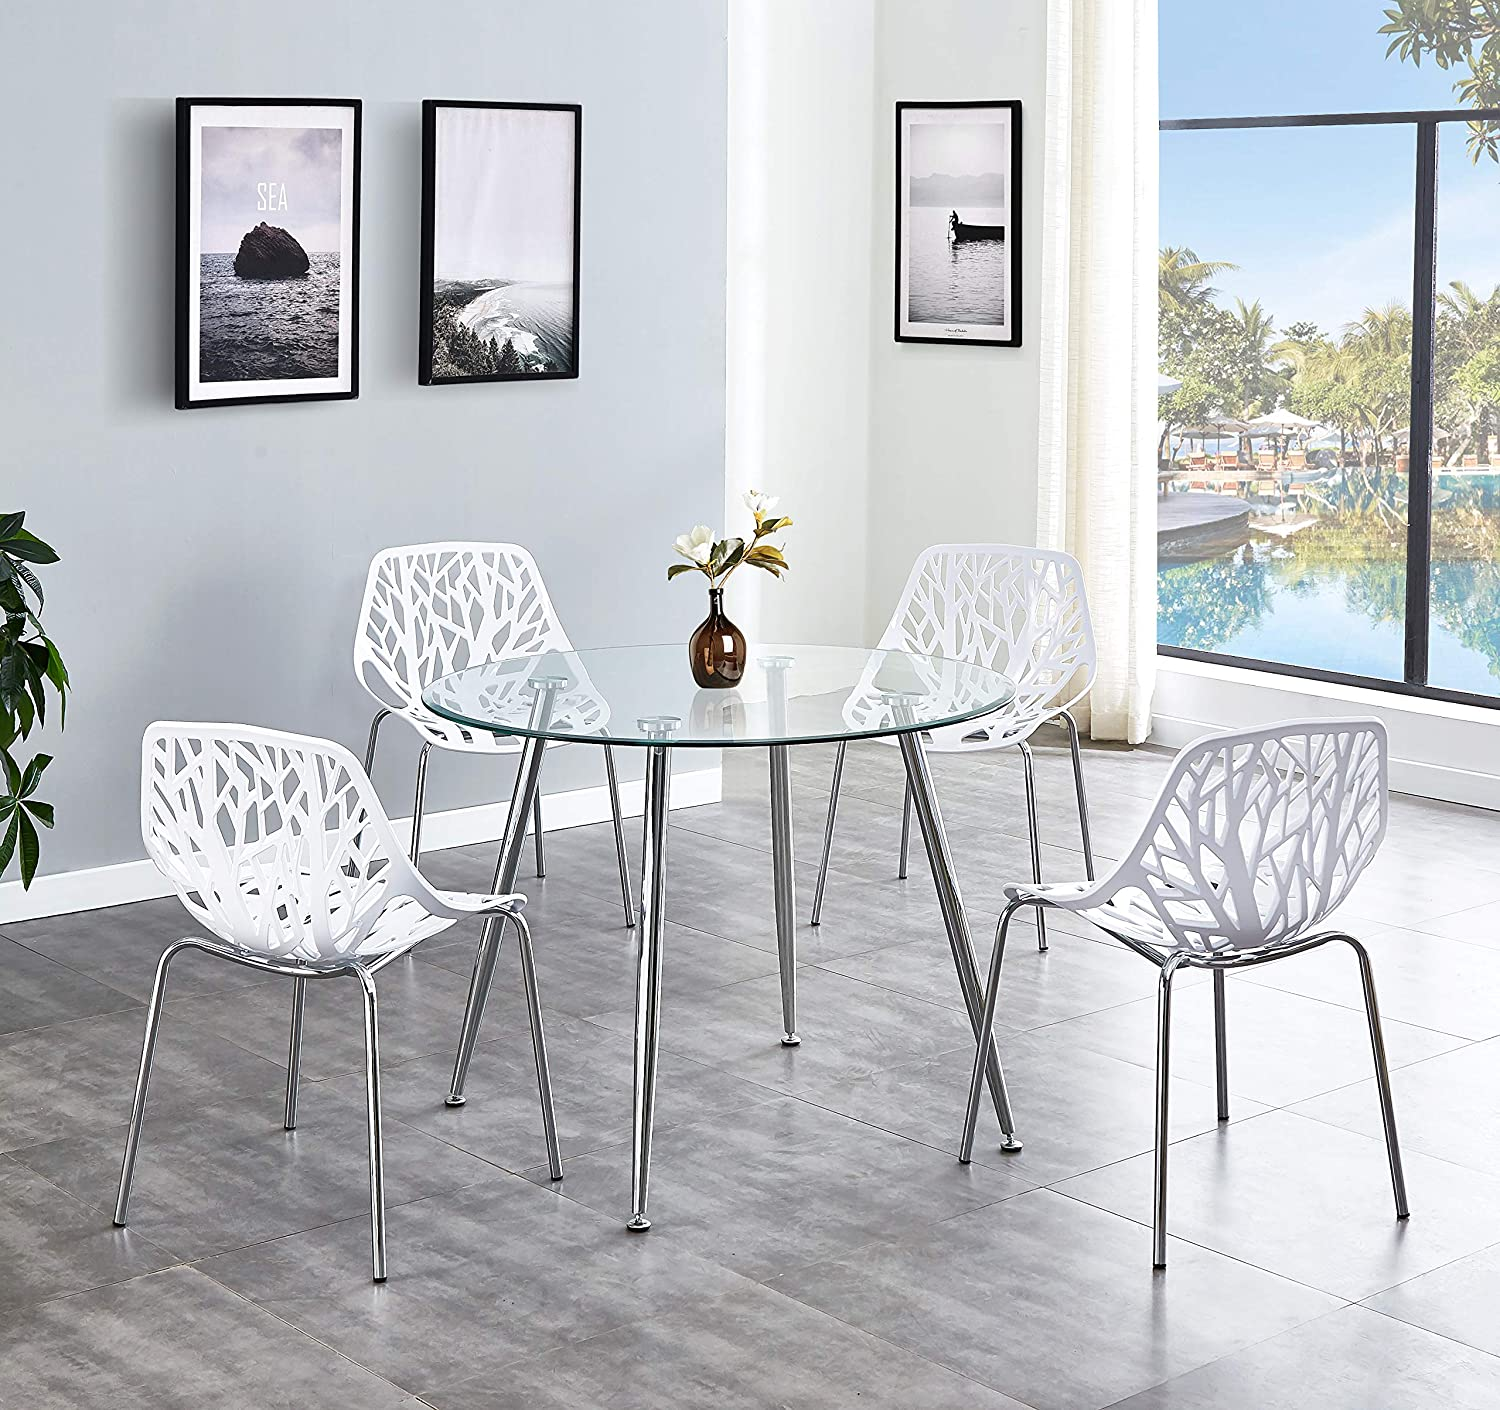 Tmee Dining Set 5pcs Modern Round Tempered Glass Dining Table And 4 Chairs Sets For Dining Room Office Bar Restaurants Cafes White Amazon Co Uk Kitchen Home